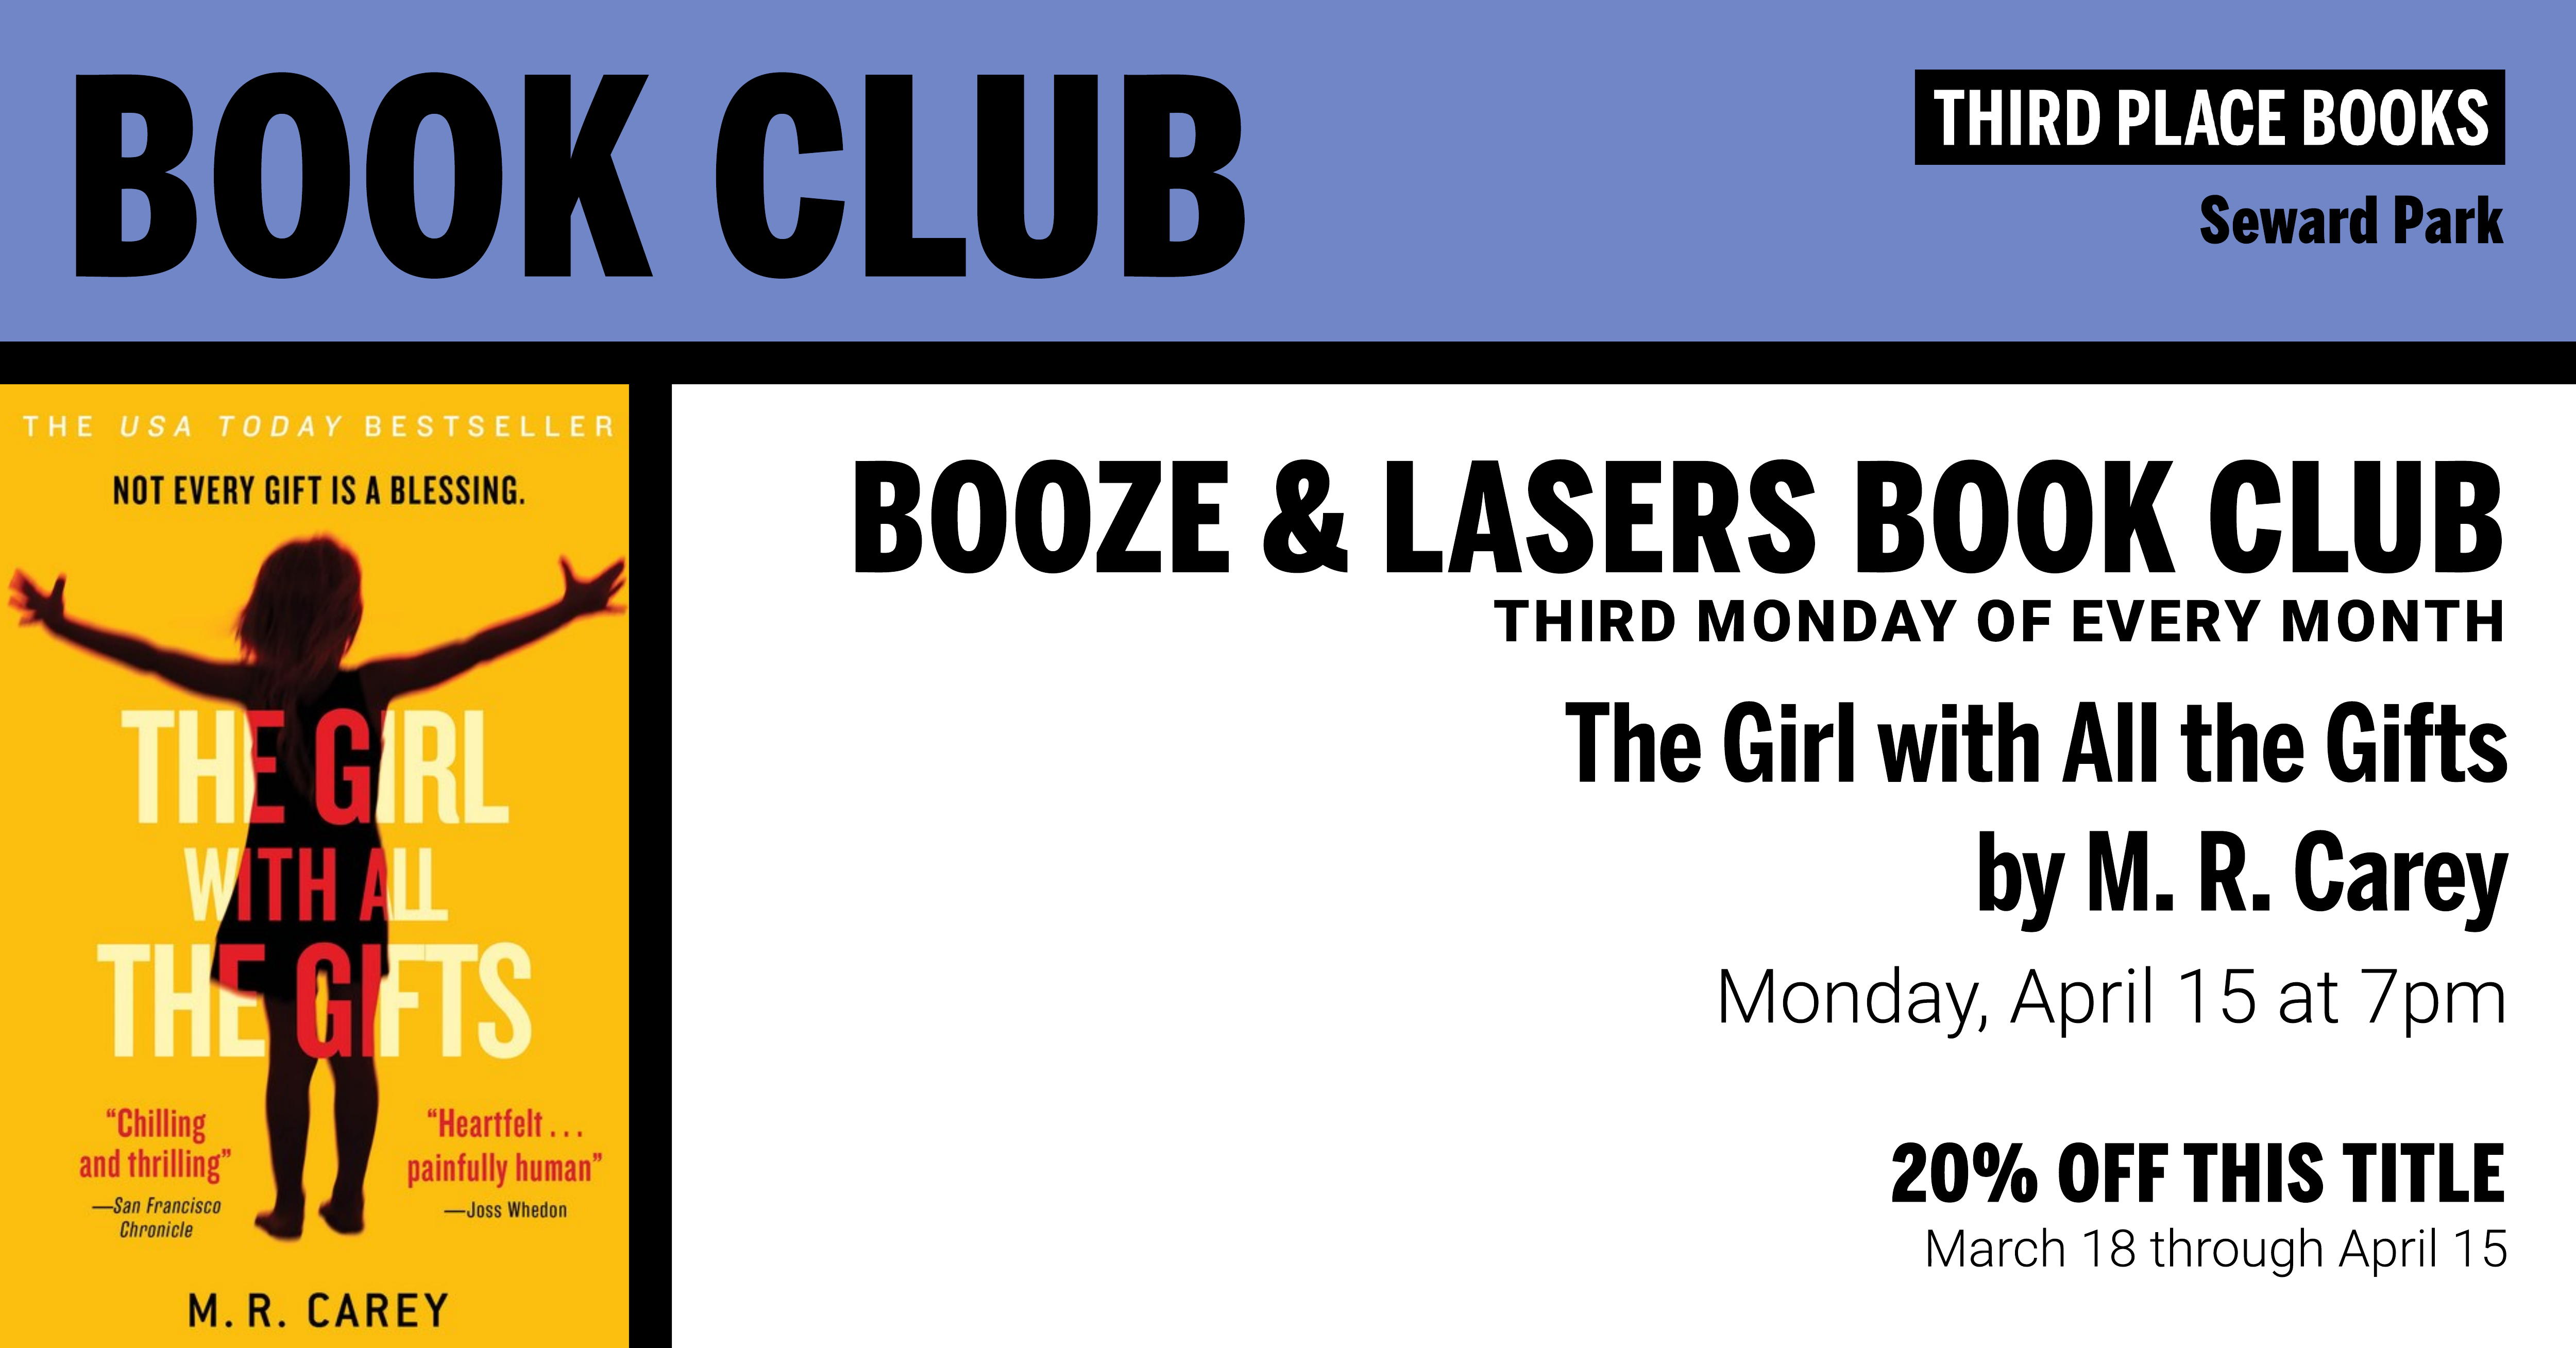 Booze & Lasers - The Girl With All the Gifts